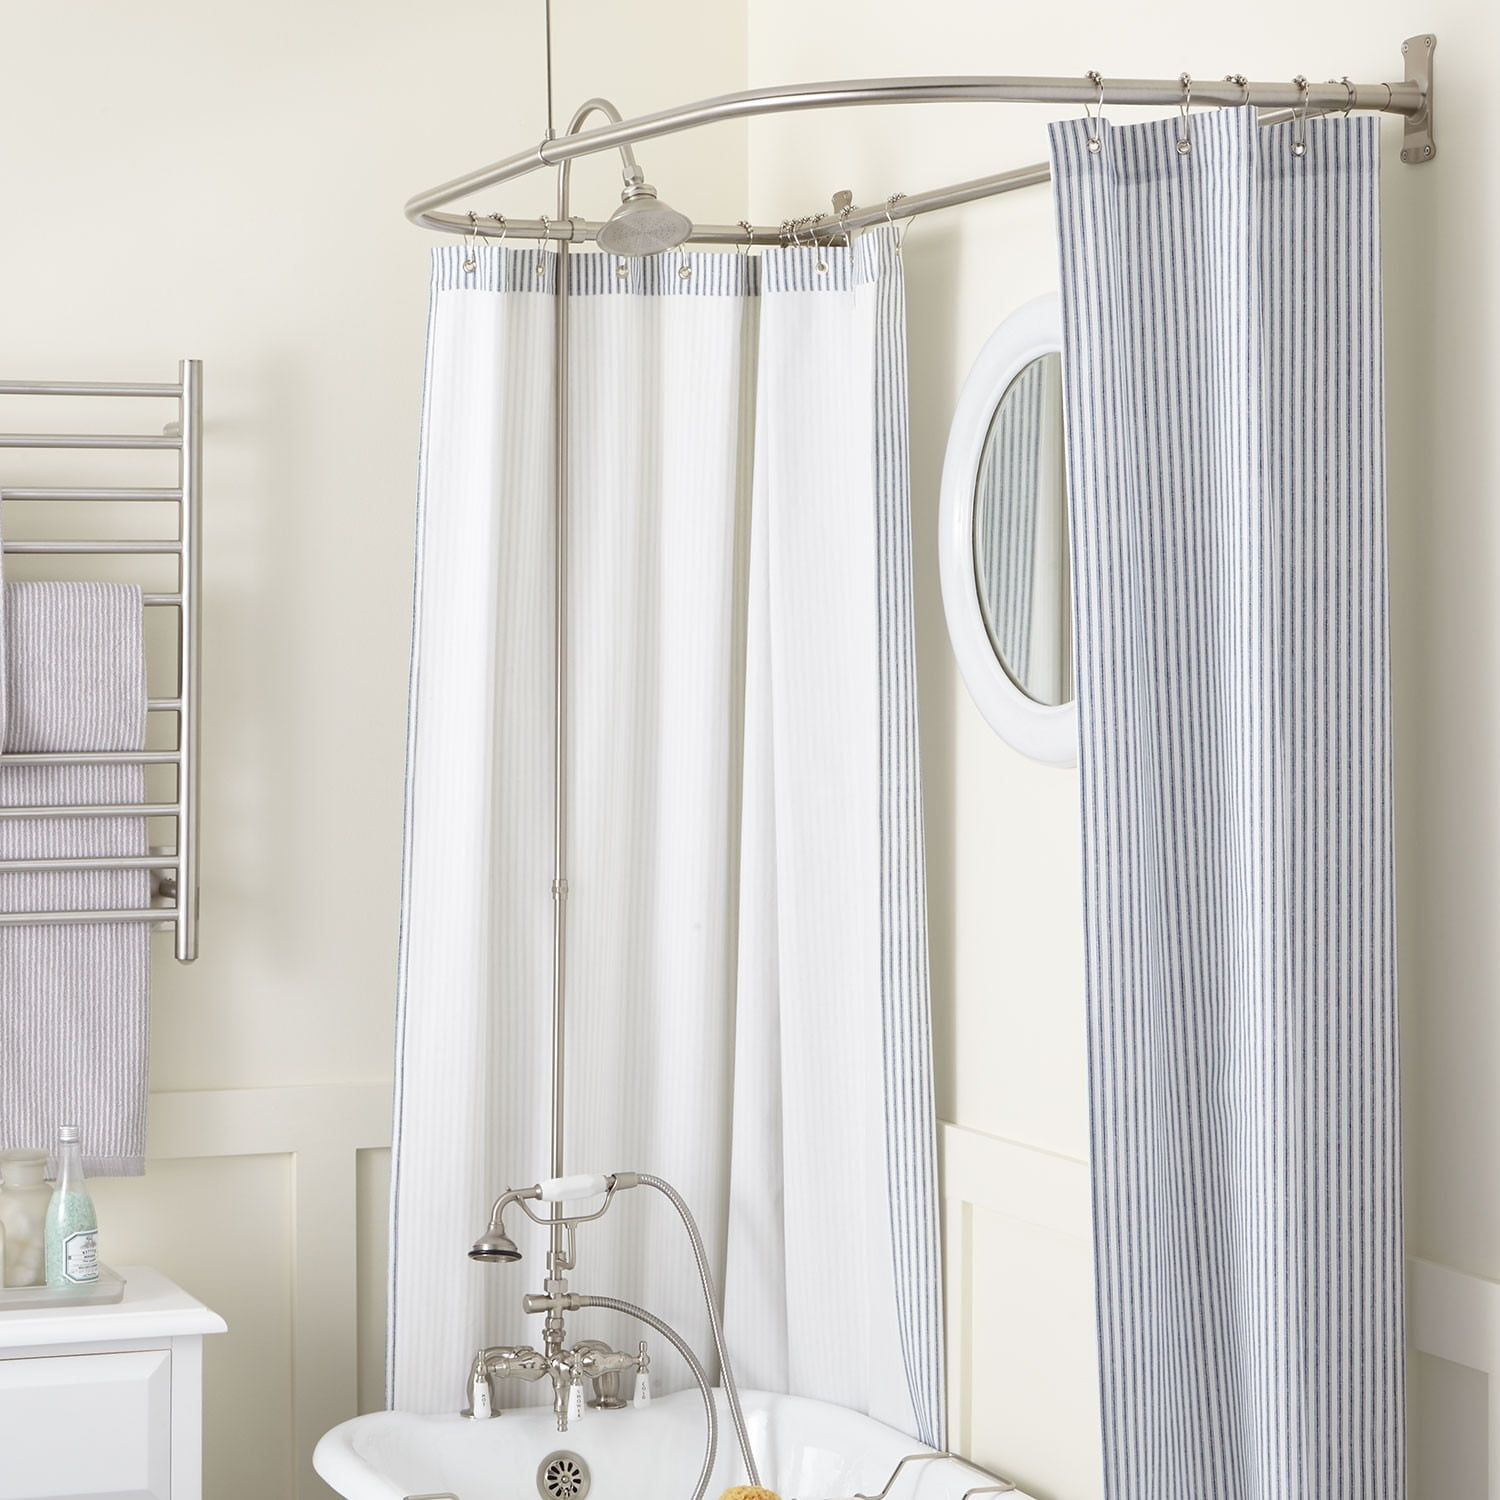 Rim Mount Clawfoot Tub Hand Shower Kit In D Style Shower Ring